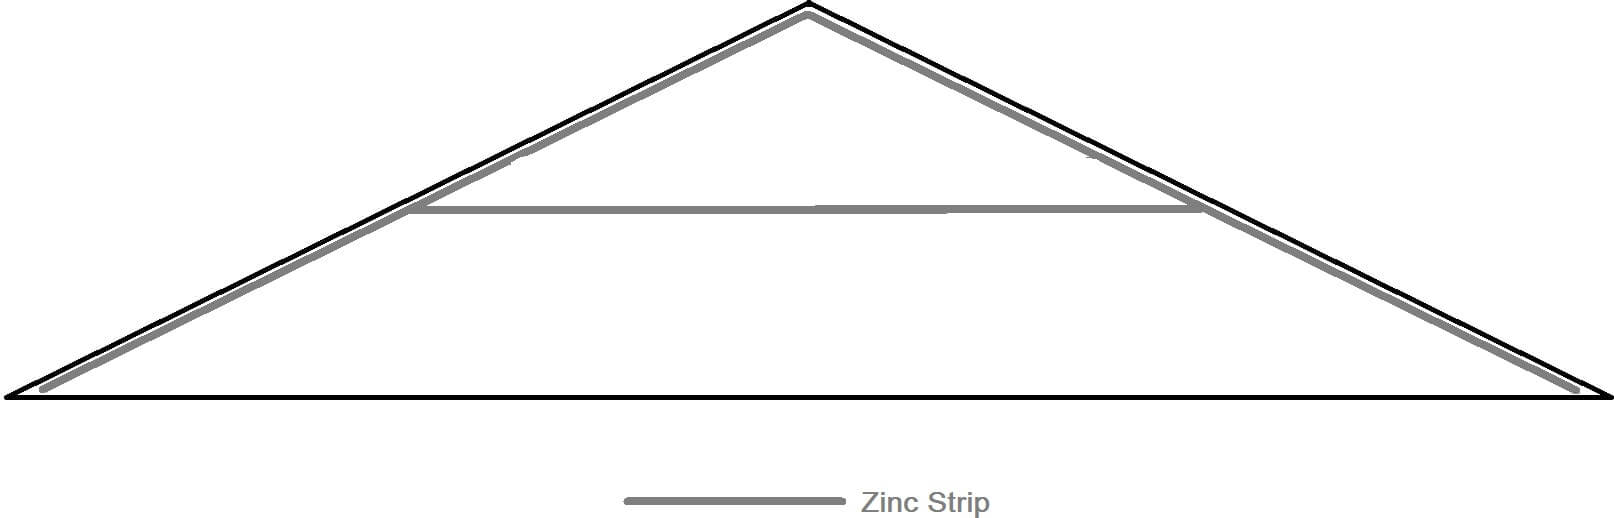 zinc strip illustration 2